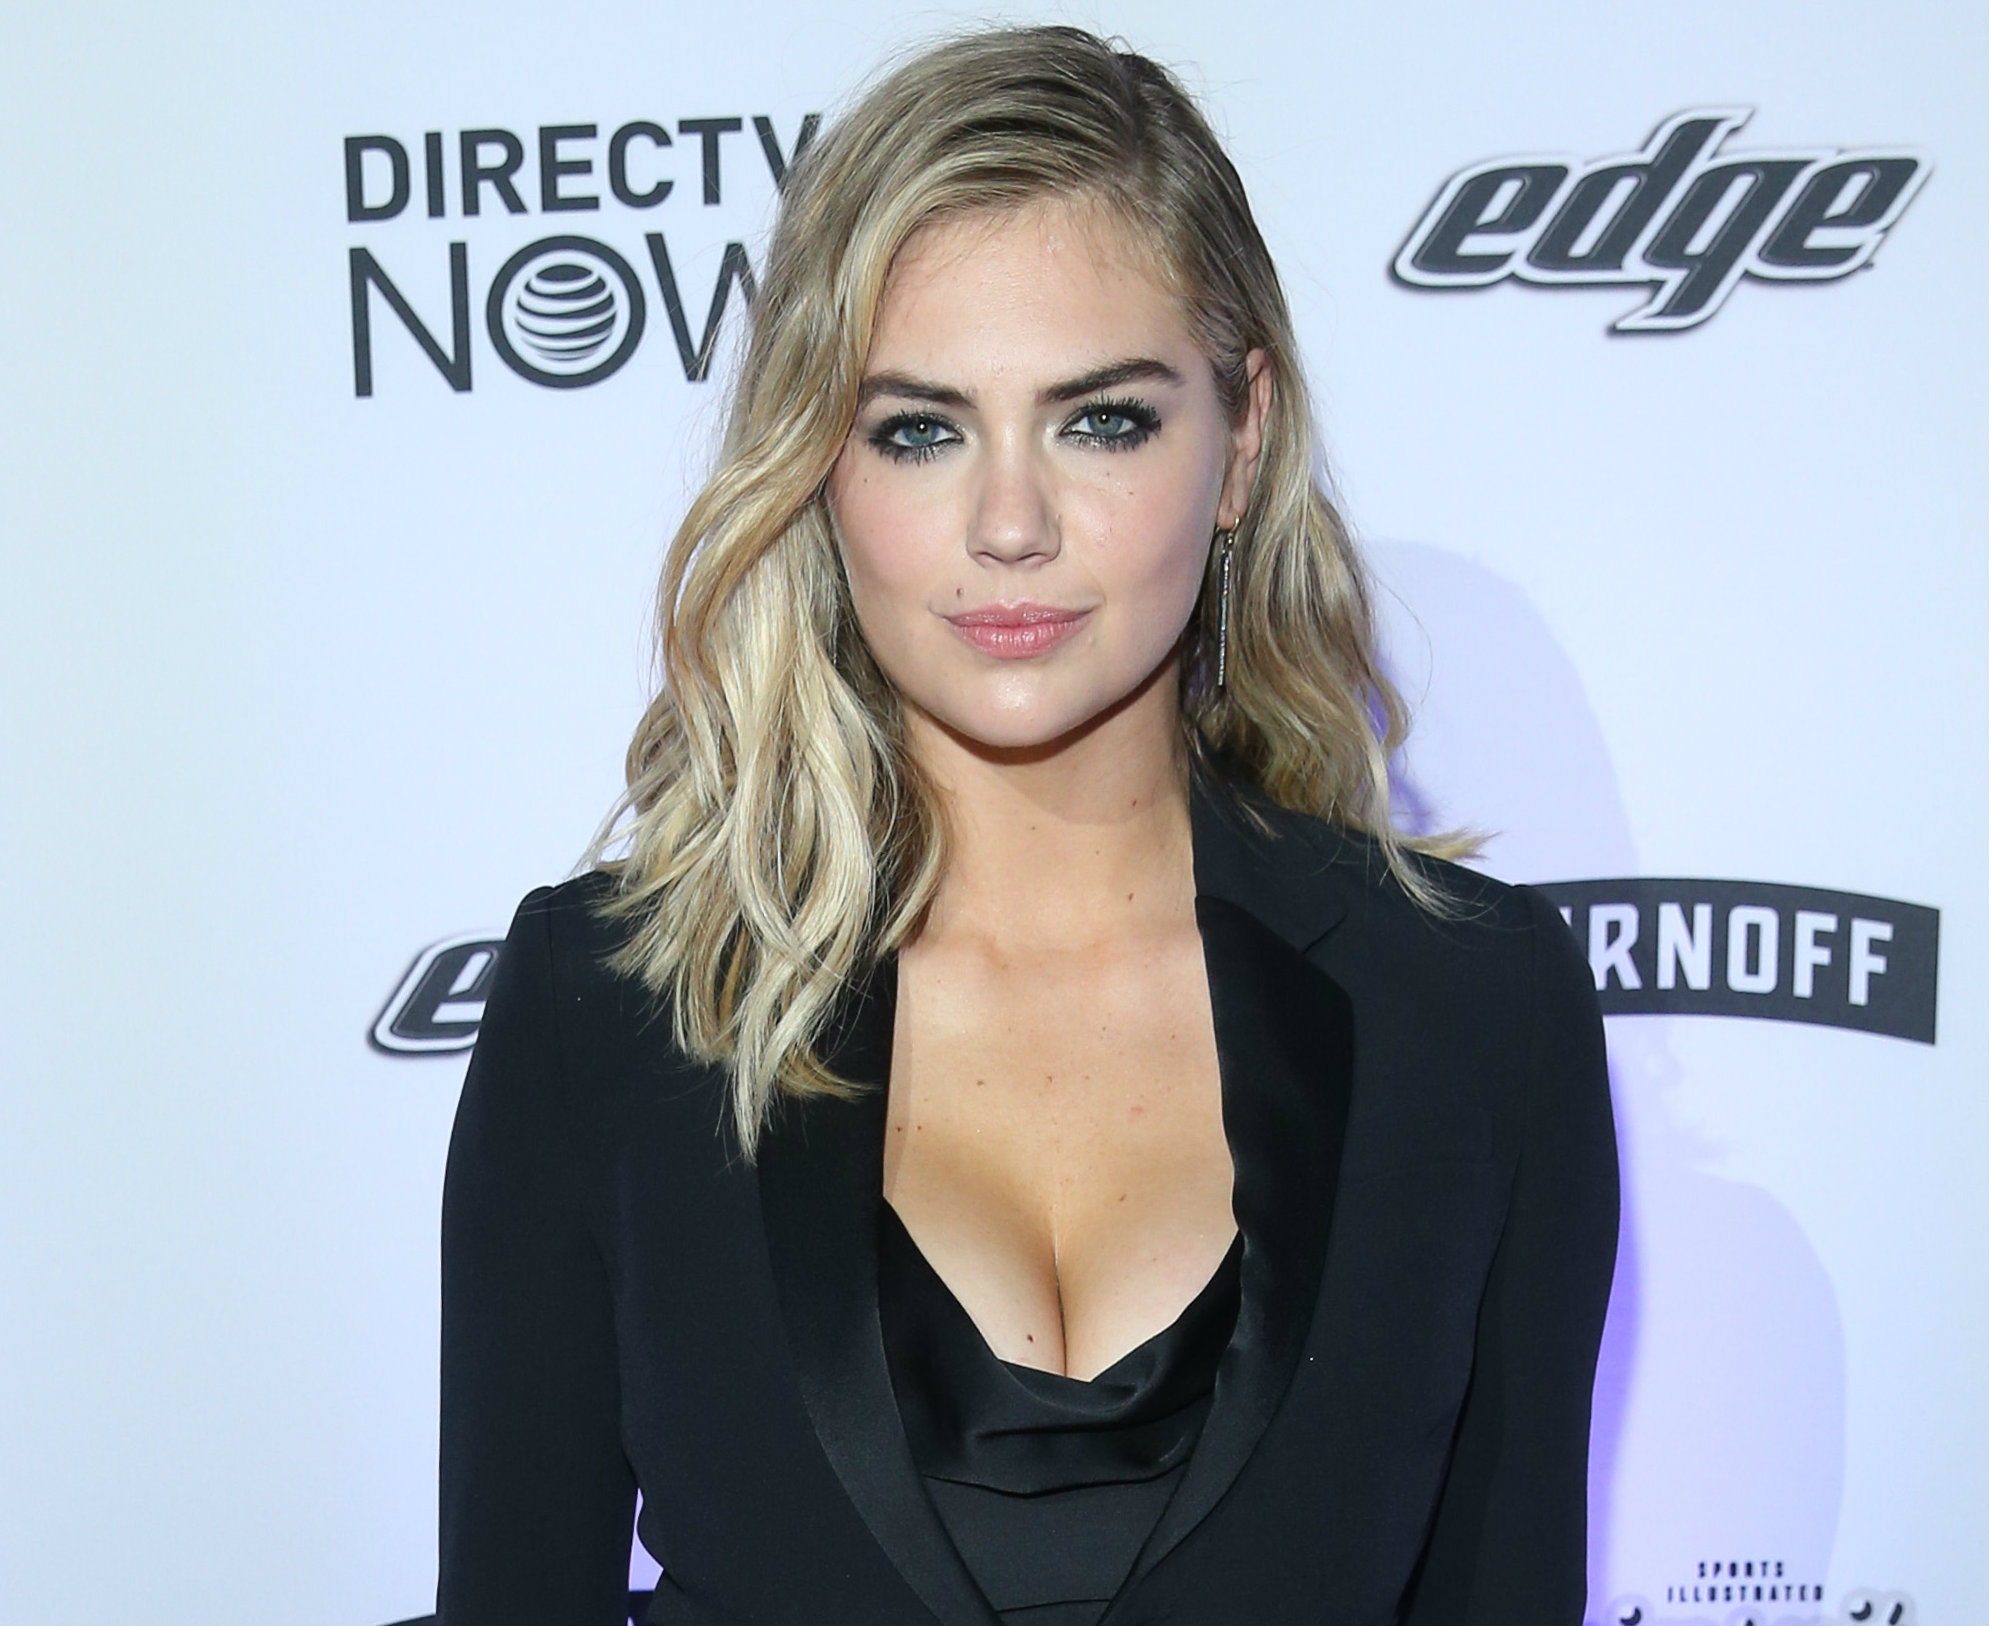 Kate Upton Details Alleged Sexual Harassment by Paul Marciano